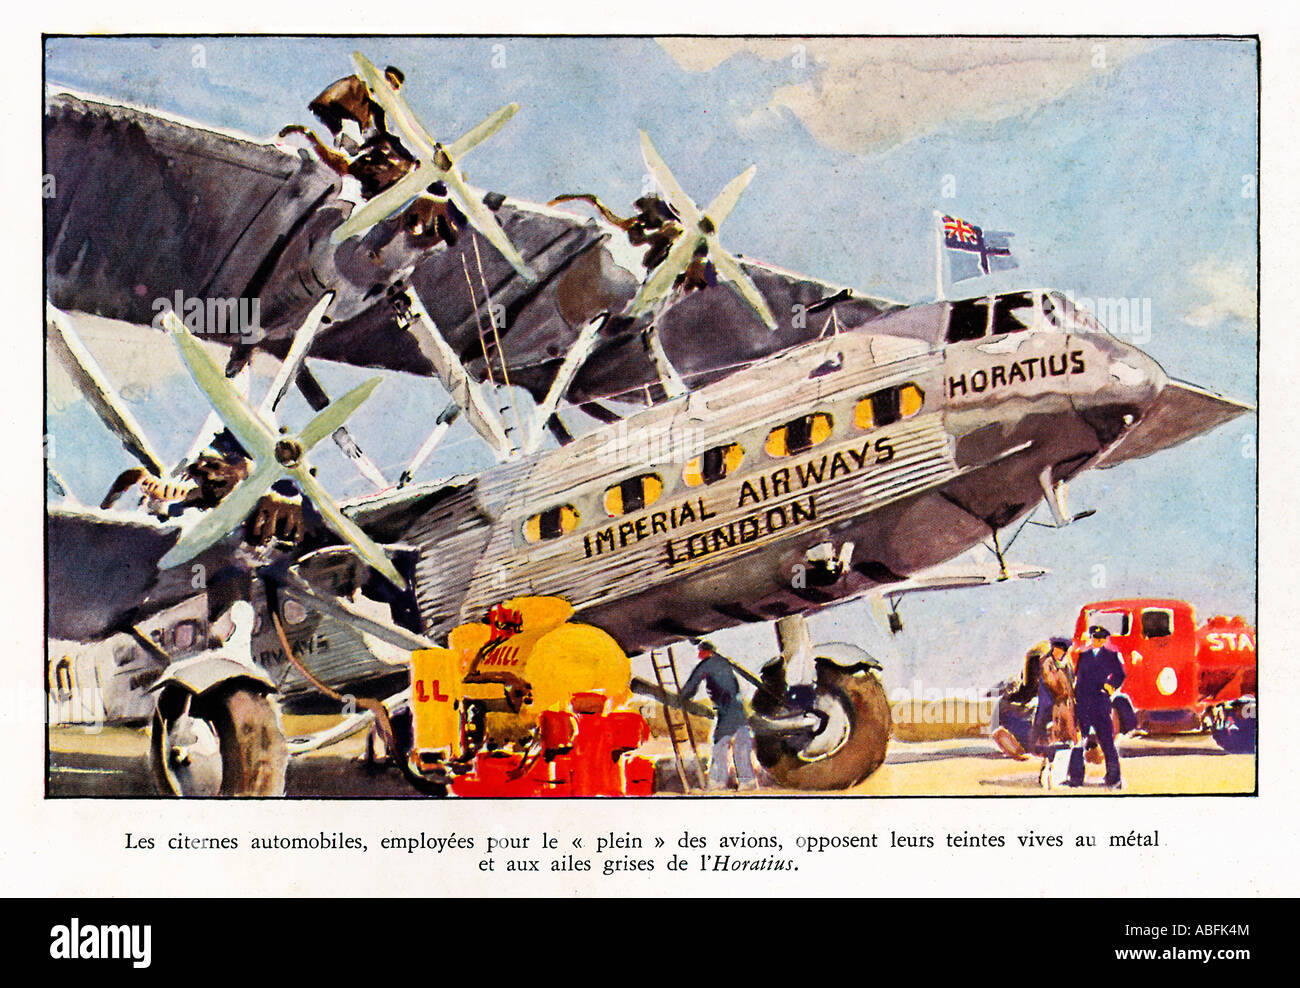 Imperial Airways Horatius 1934 French magazine illustration of the Handley Page airliner being refuelled - Stock Image